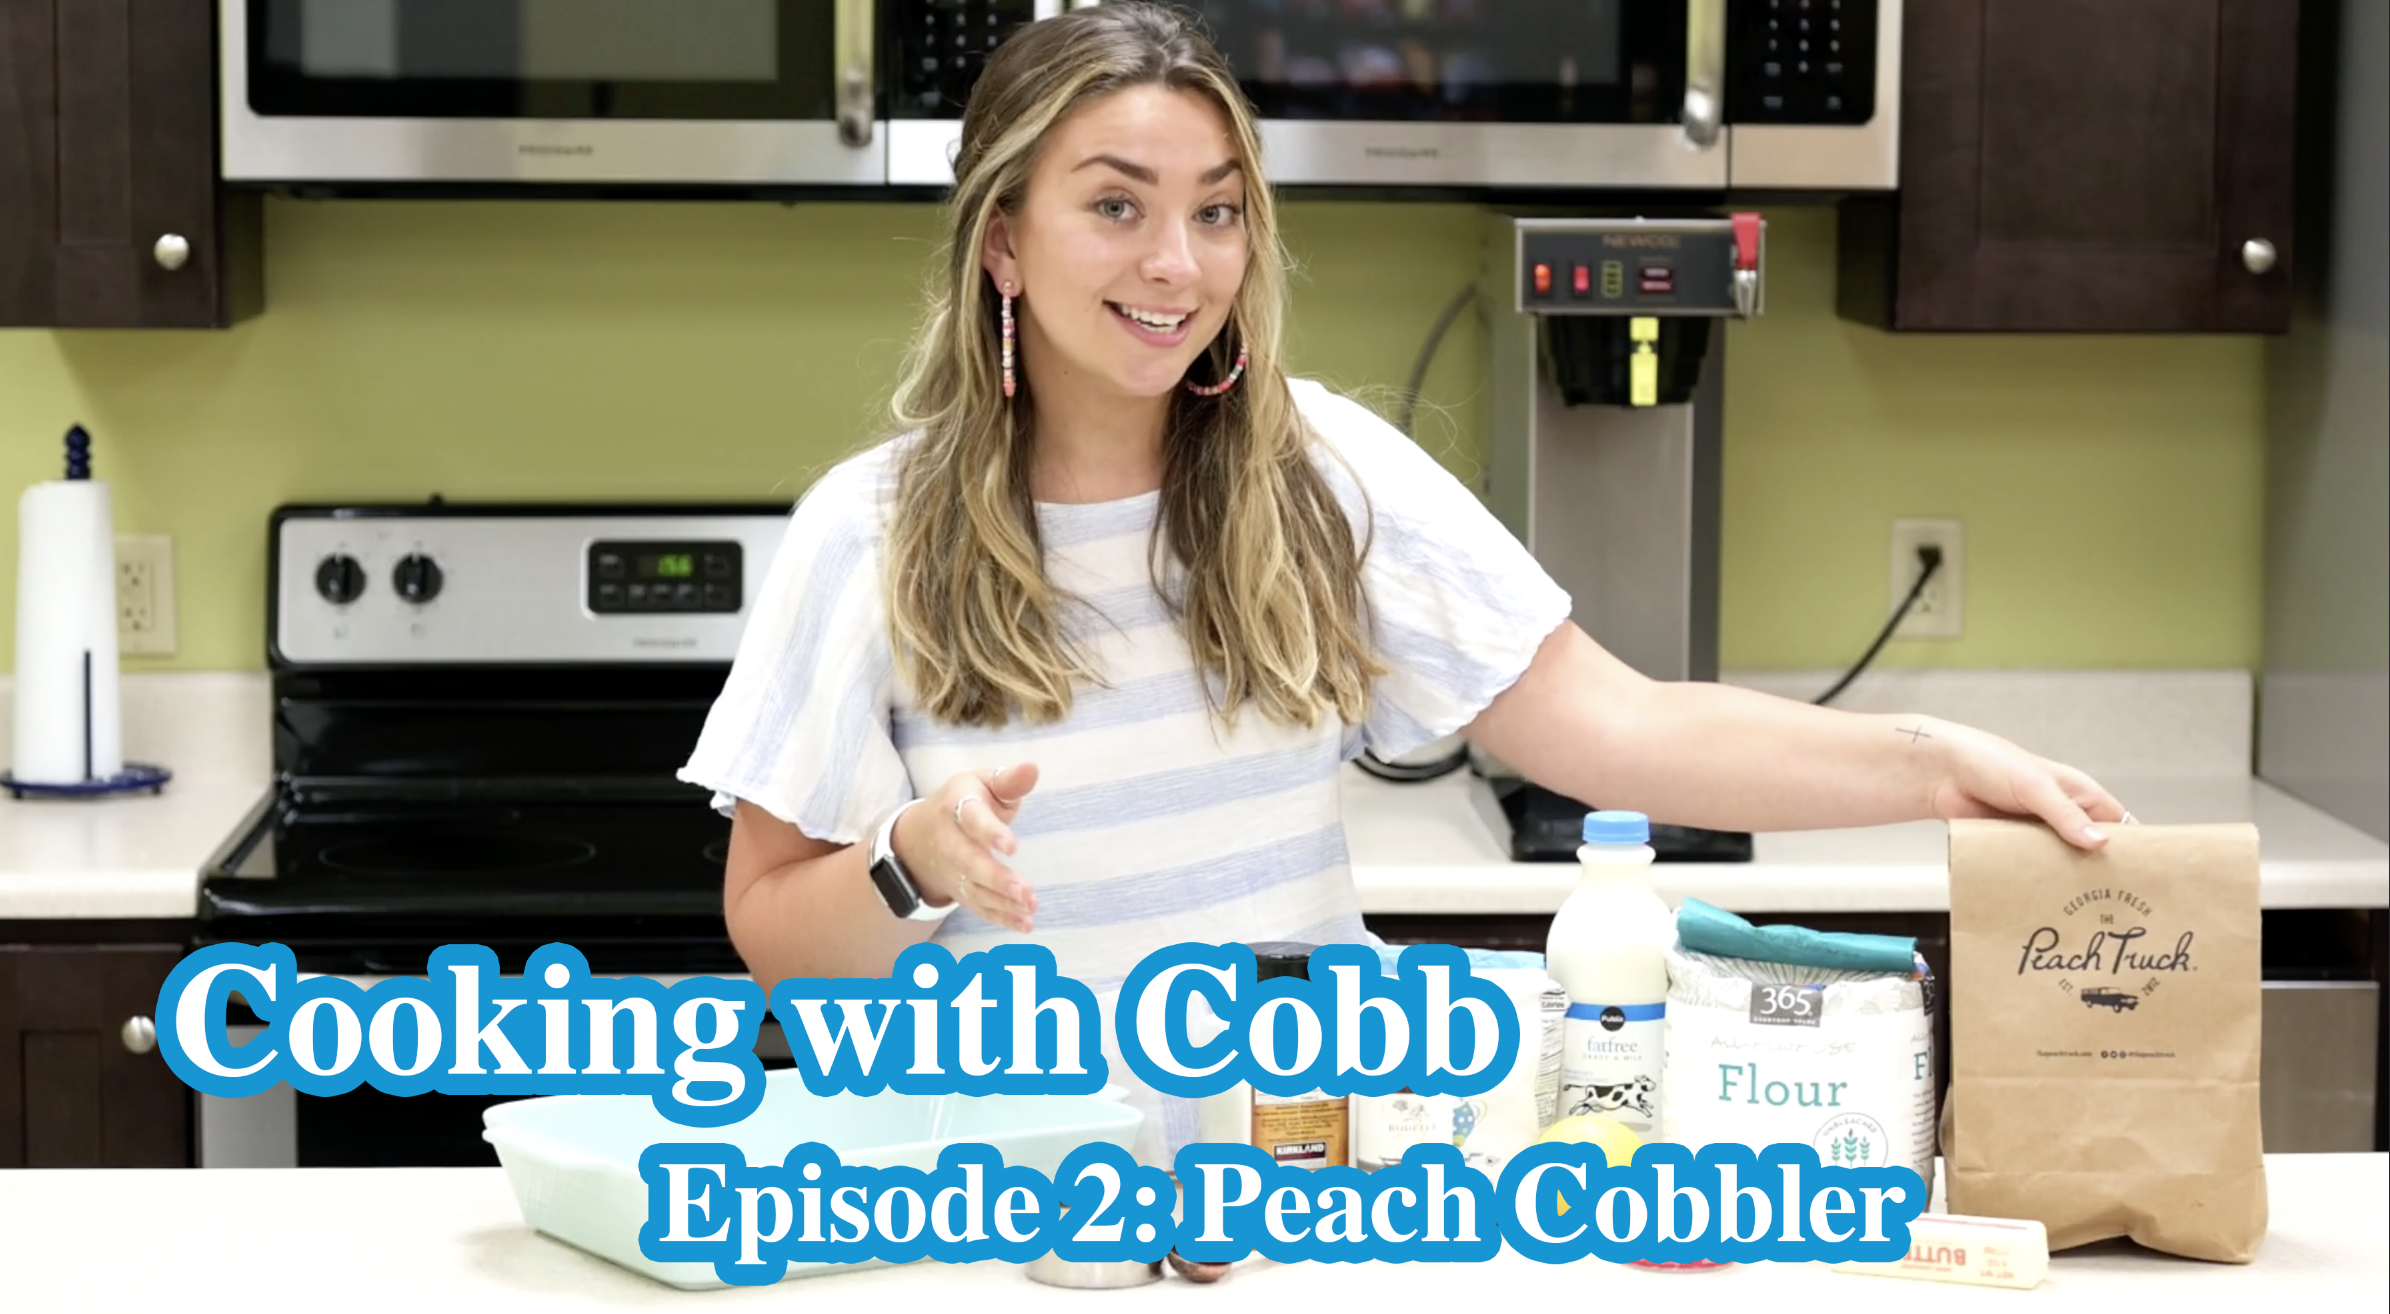 Cooking with Cobb - Episode 2 Peach Cobbler